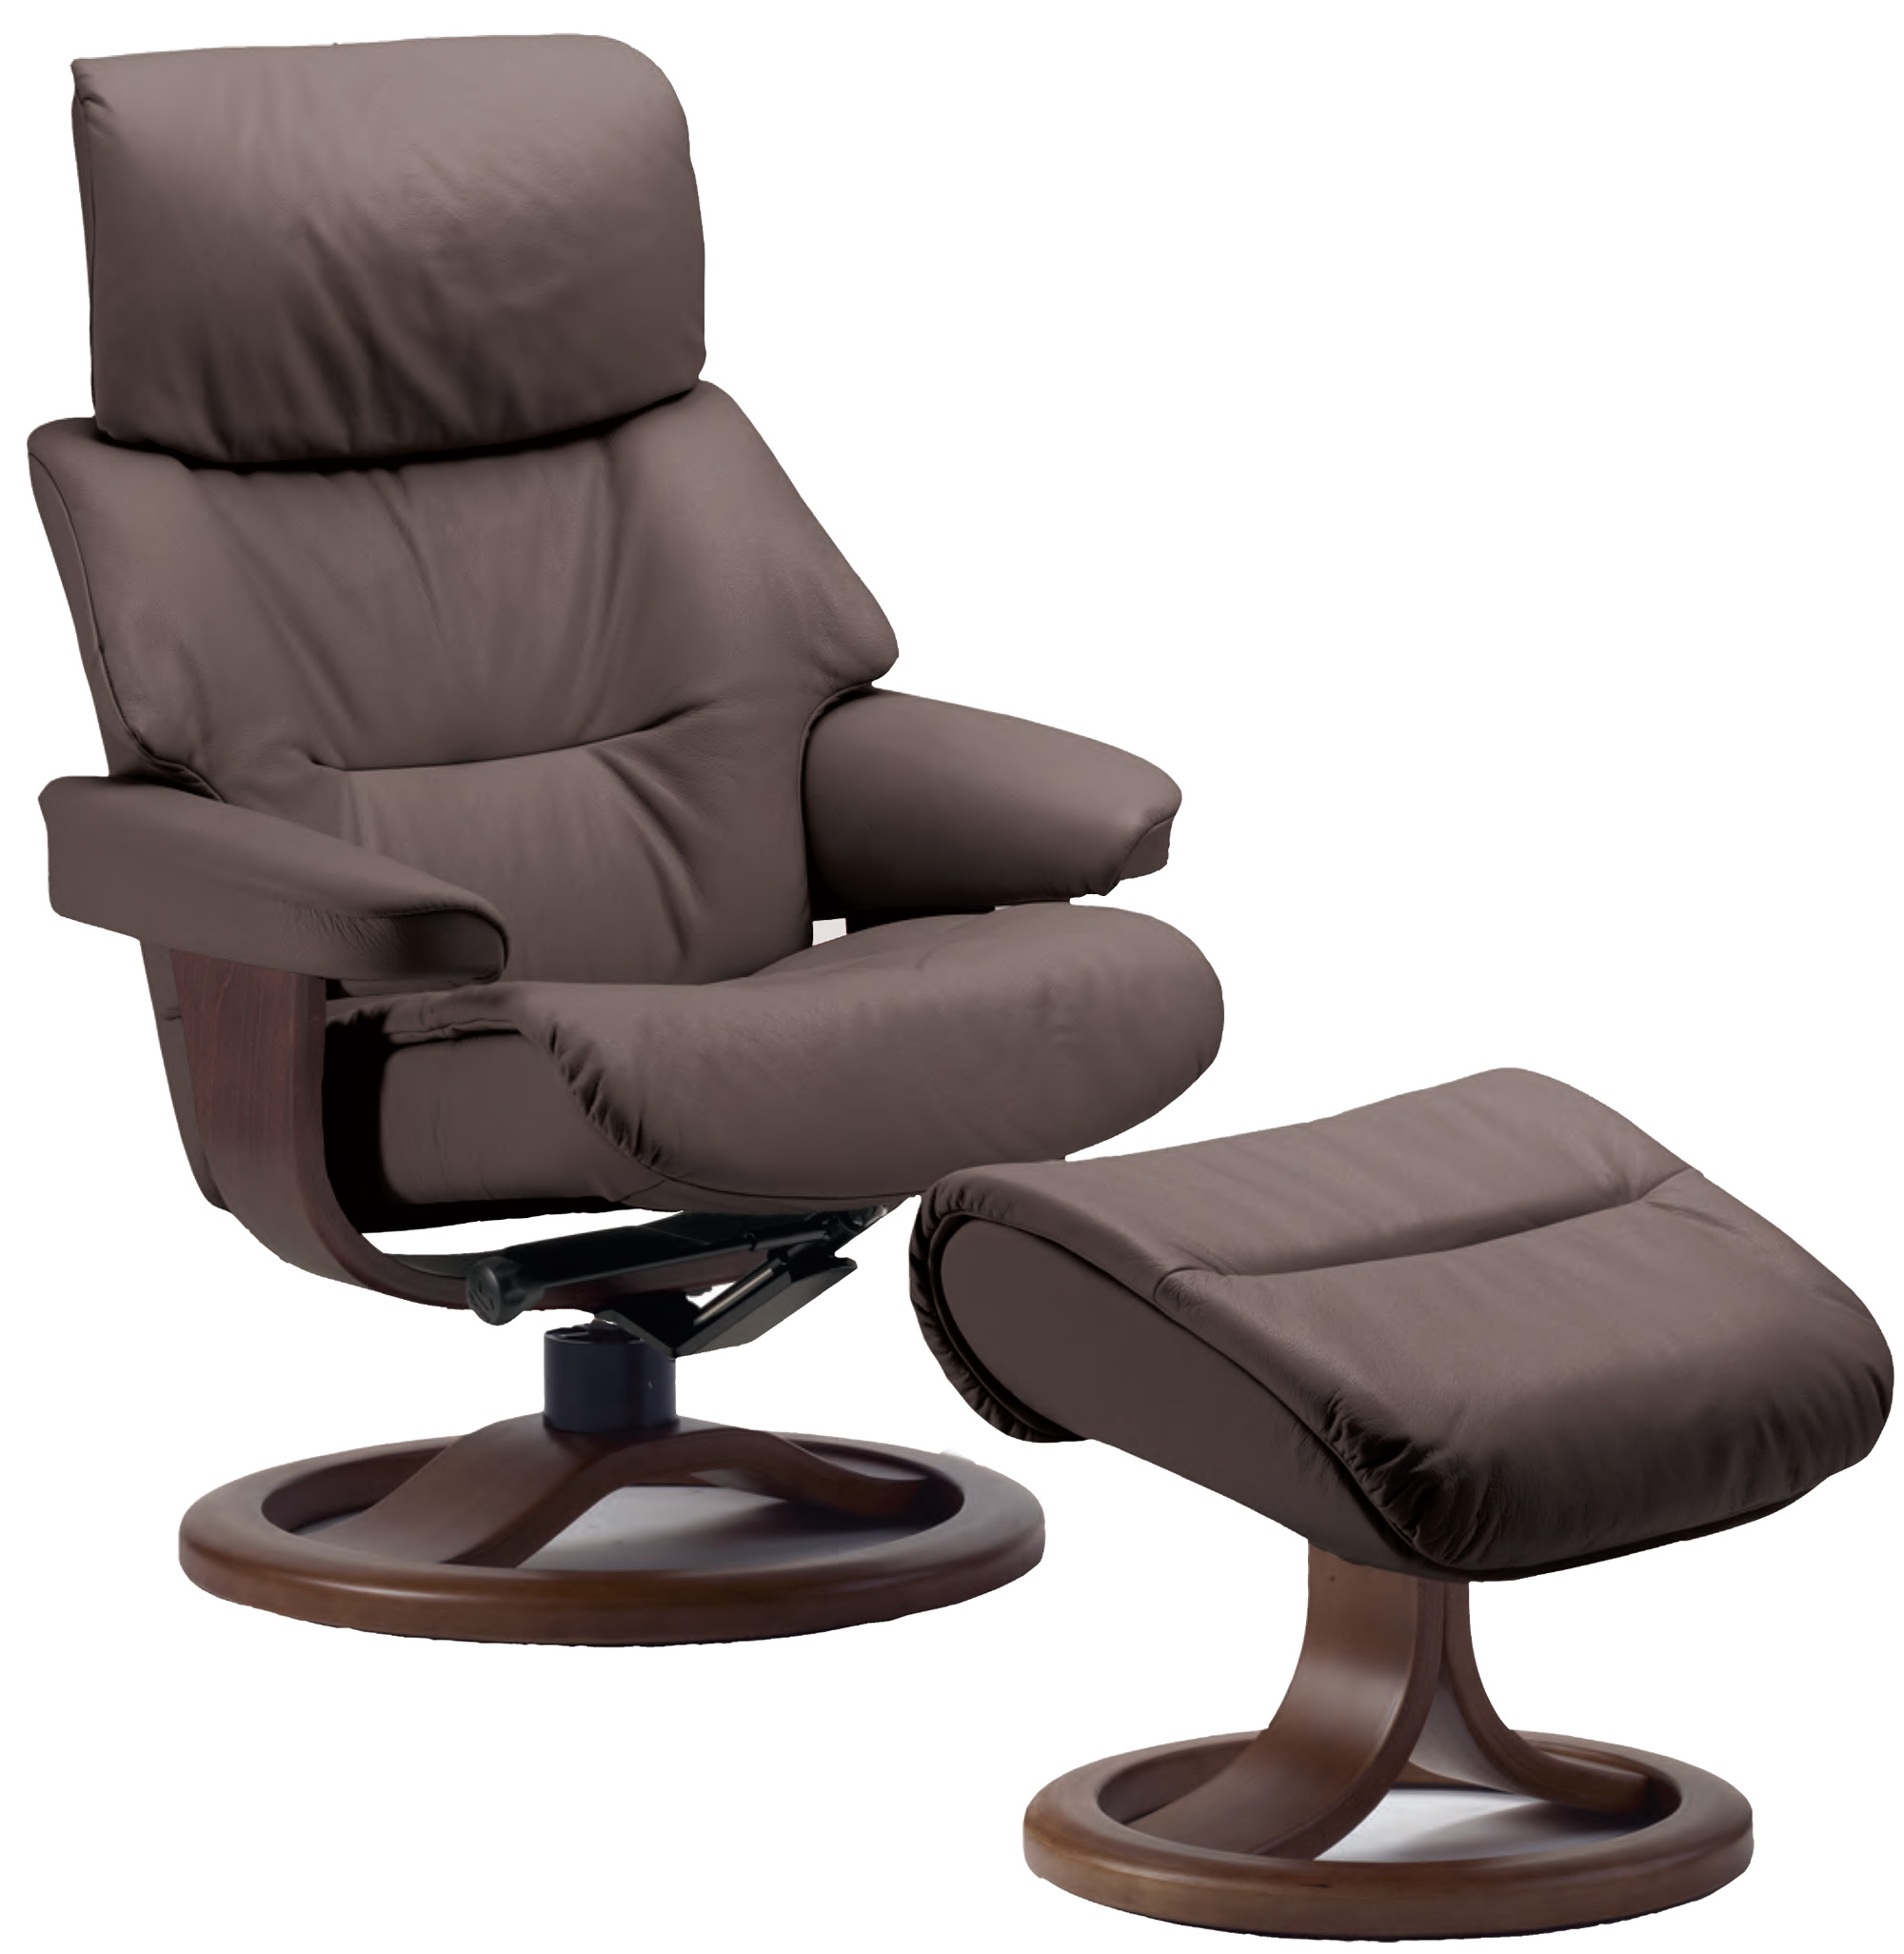 Fjords Grip Leather Ergonomic Recliner Chair and Ottoman Scandinavian Lounger  sc 1 st  Vitalityweb.com & Fjords Grip Ergonomic Leather Recliner Chair + Ottoman ... islam-shia.org